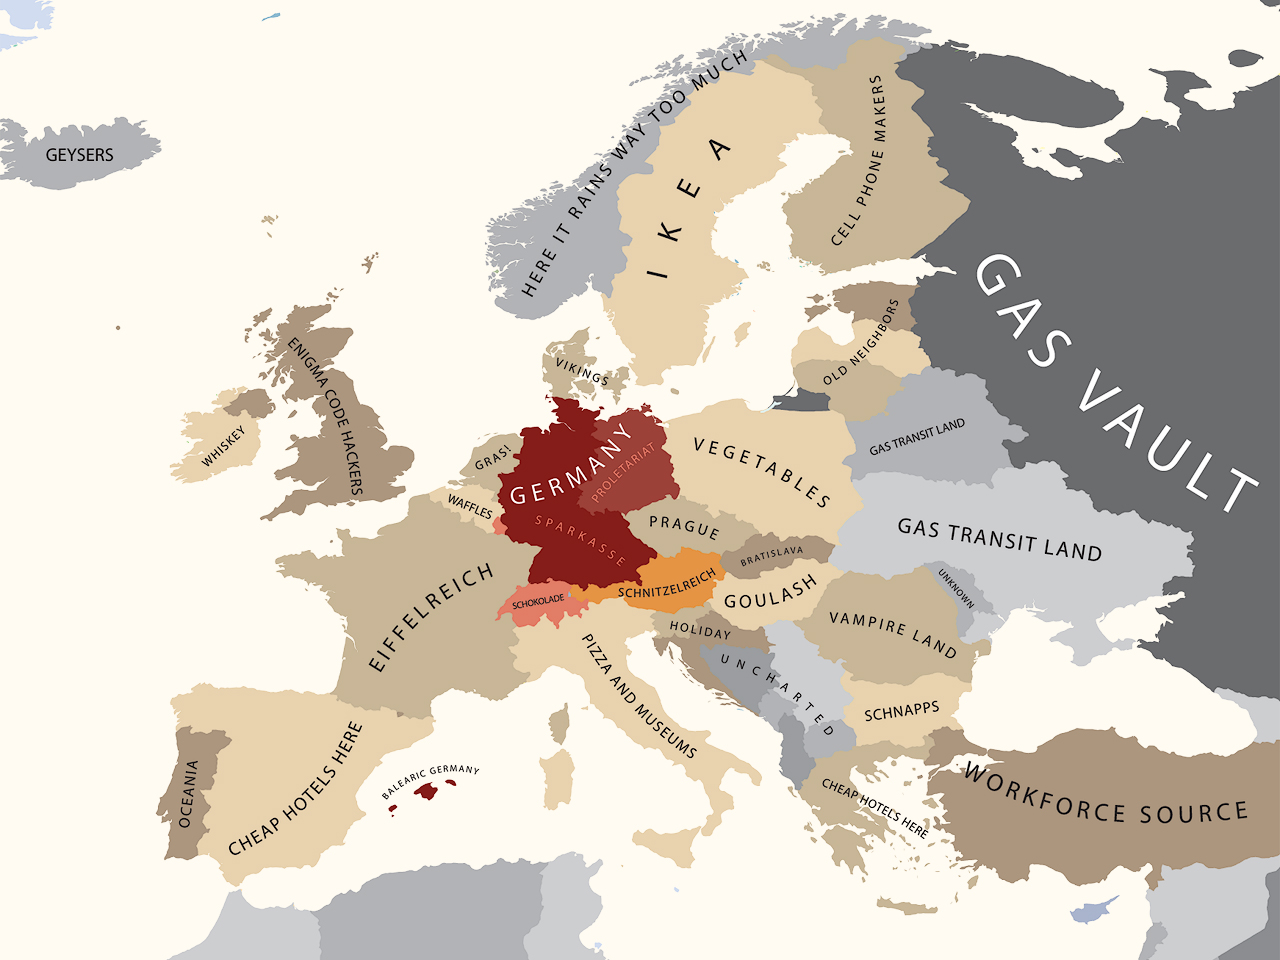 All Sizes Europe According To Germany Flickr Photo Sharing - Germany map size